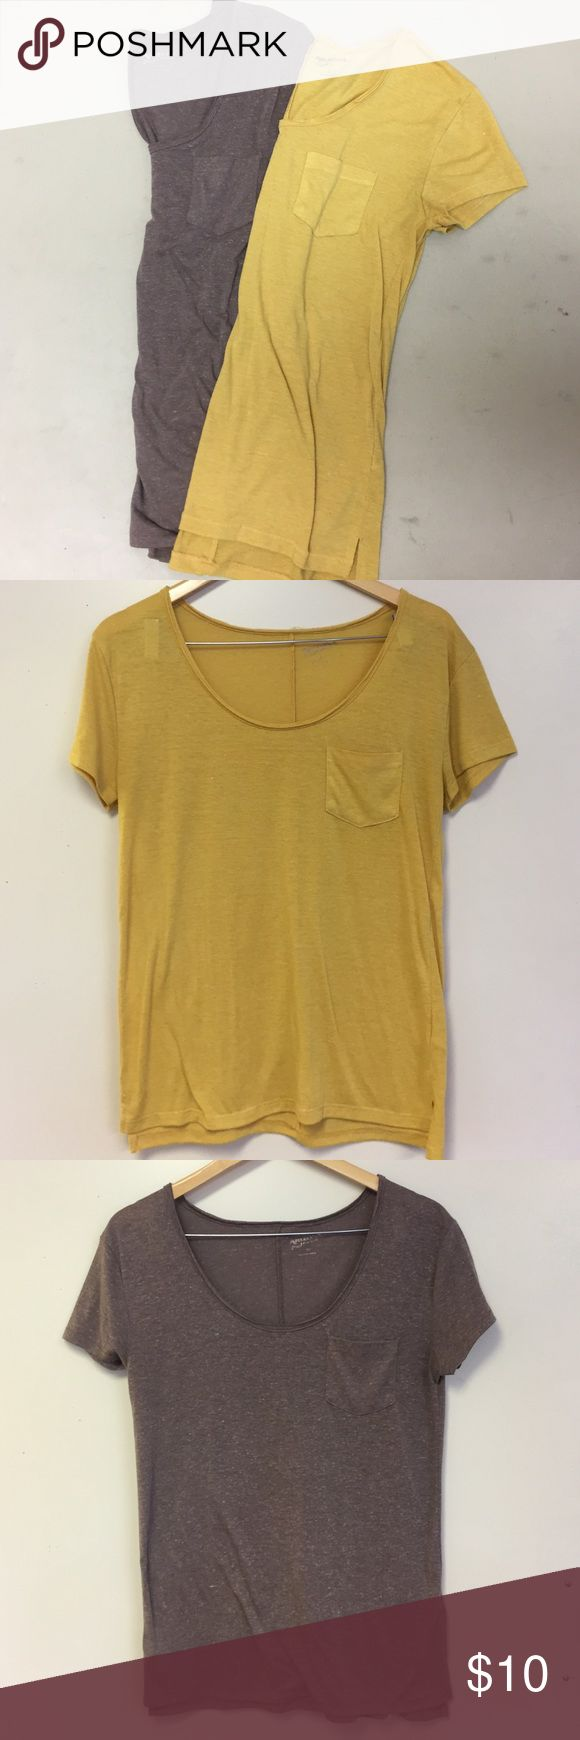 Bundle t-shirts One mustard yellow top and one brown top. Both lightly worn Arizona Jean Company Tops Tees - Short Sleeve